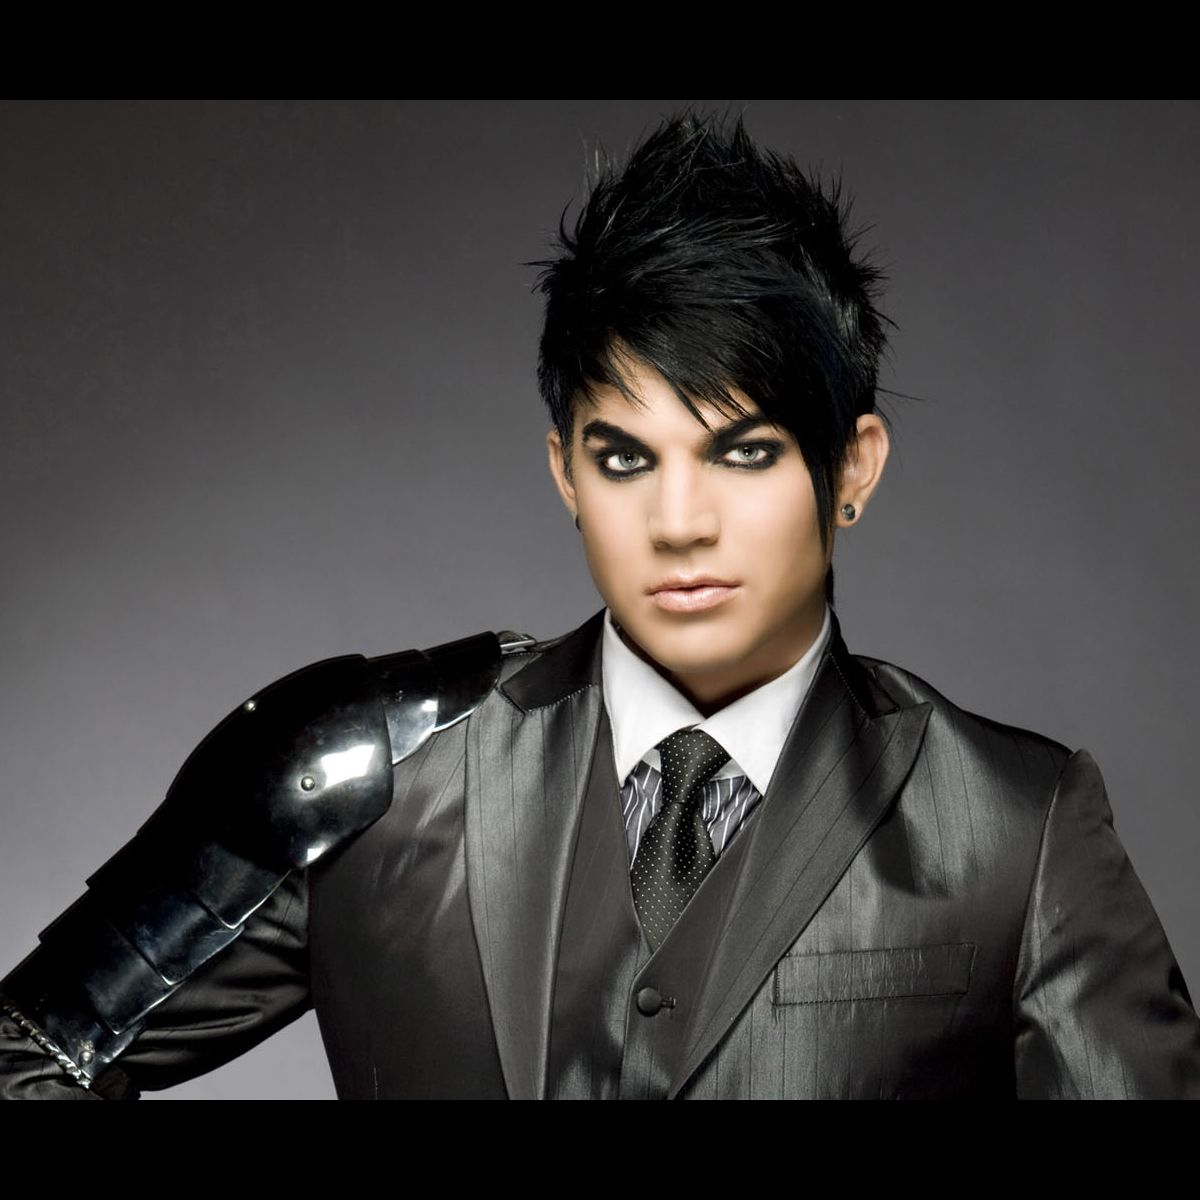 adam lambert hair style adam lambert photo puremedias 7937